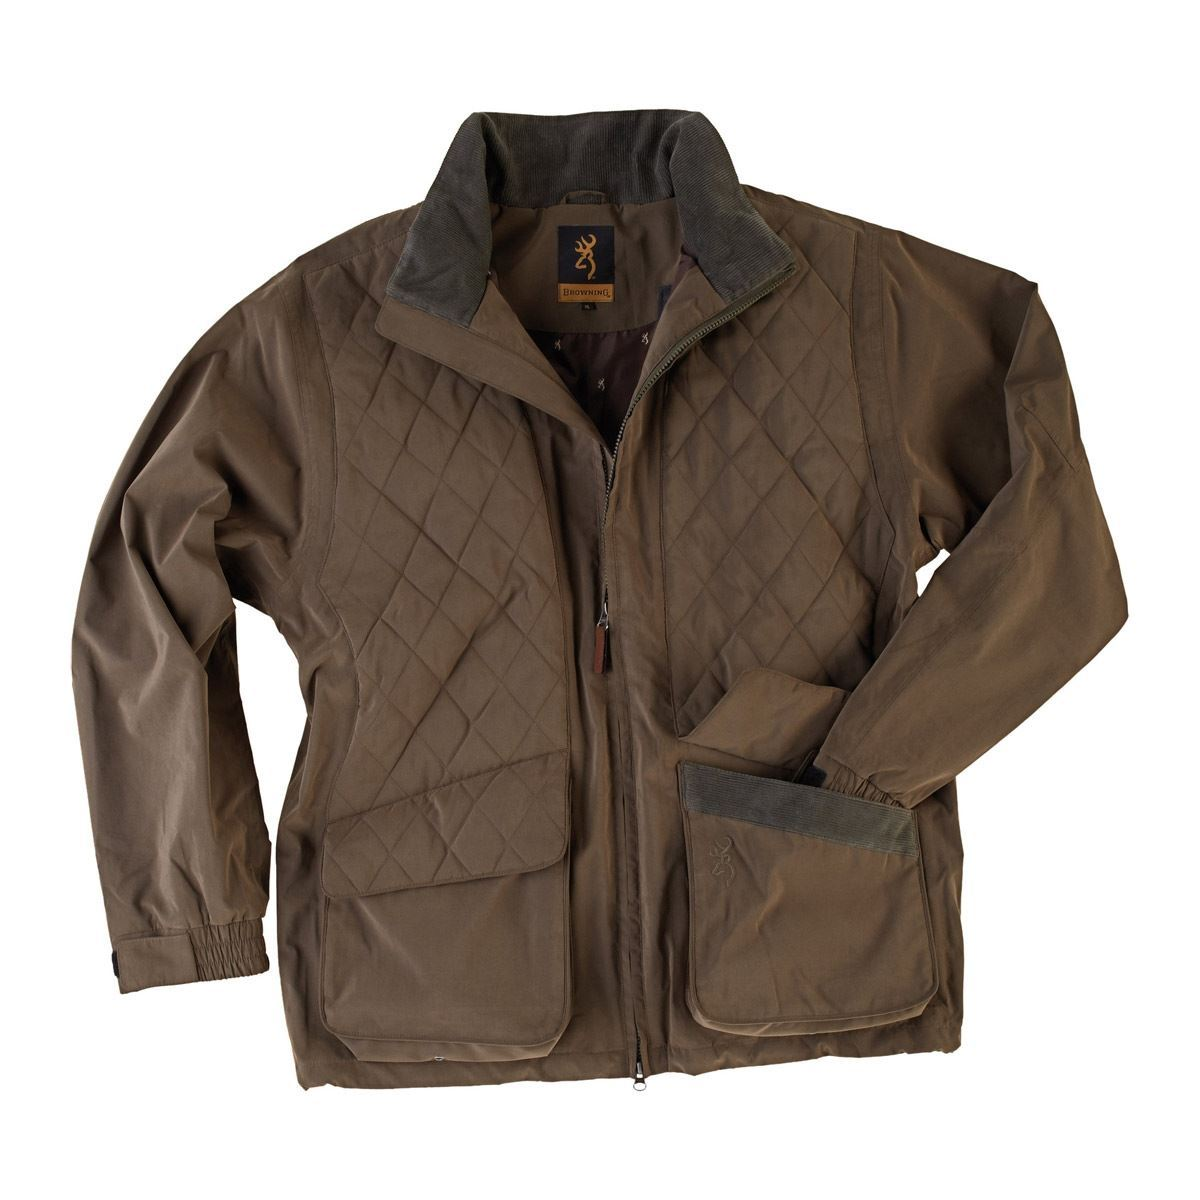 Browning Jacket Rochefort Active Green - reid outdoors